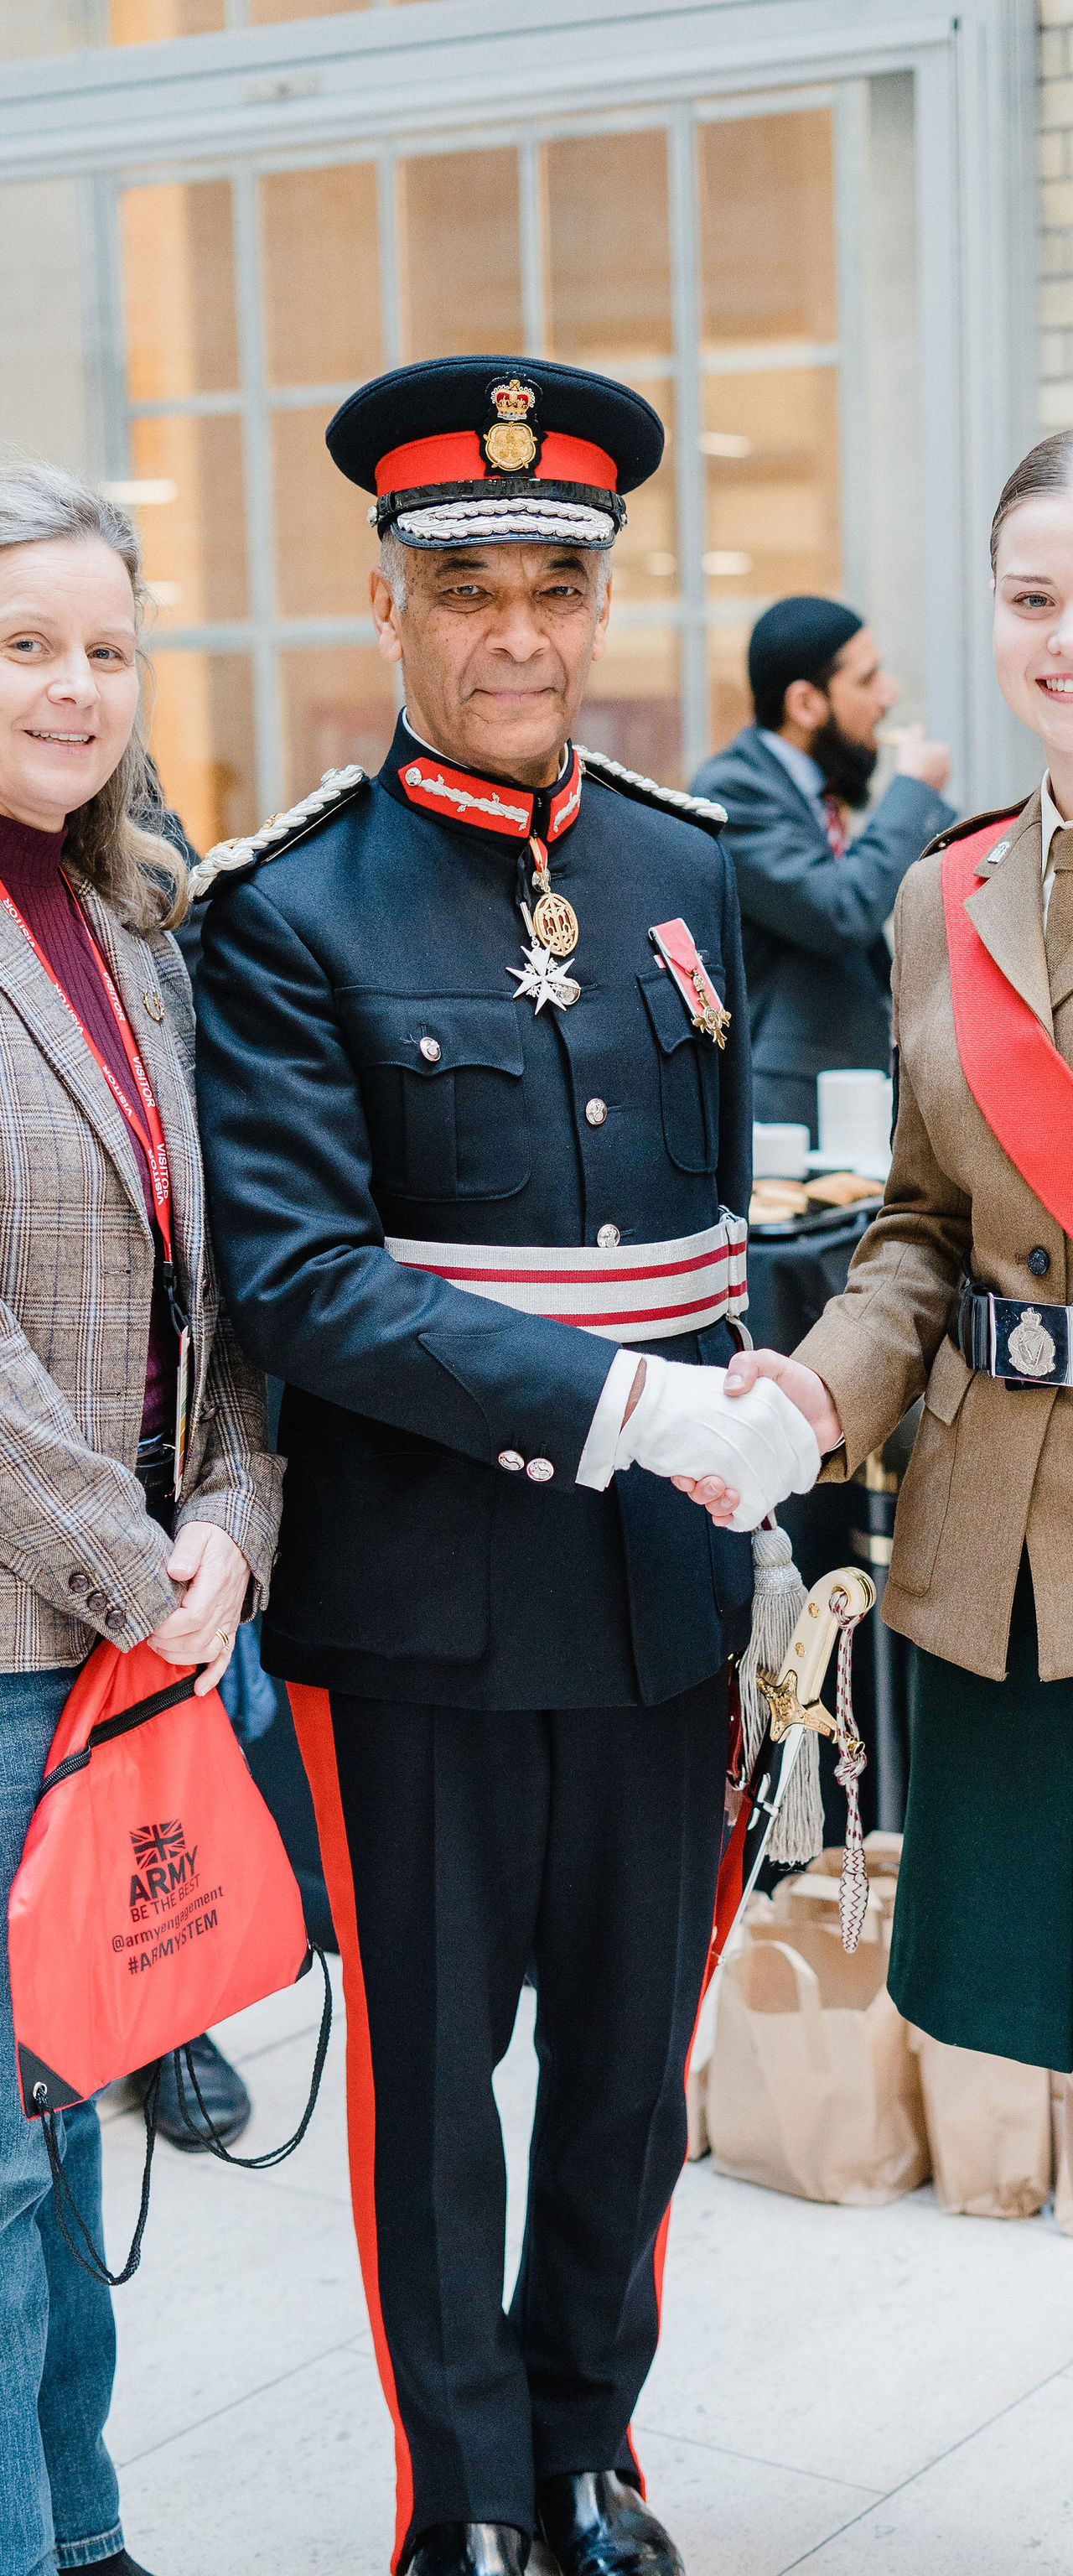 The Lord Lieutenant attends Never Such Innocence Community Roadshow